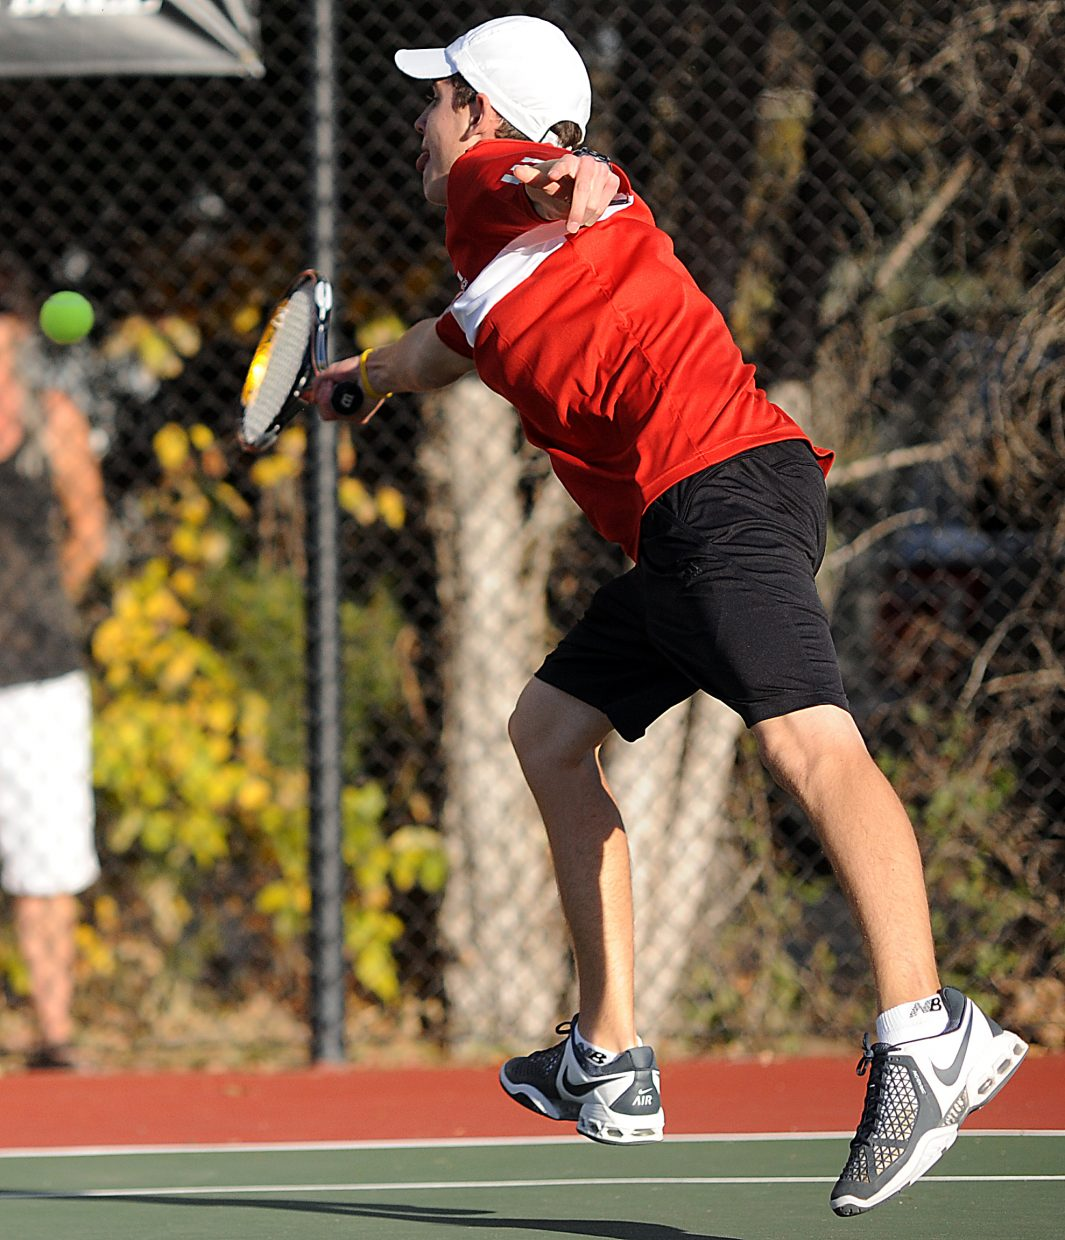 Callum Richman tries to catch a ball Thursday at the state tennis tournament in Pueblo.